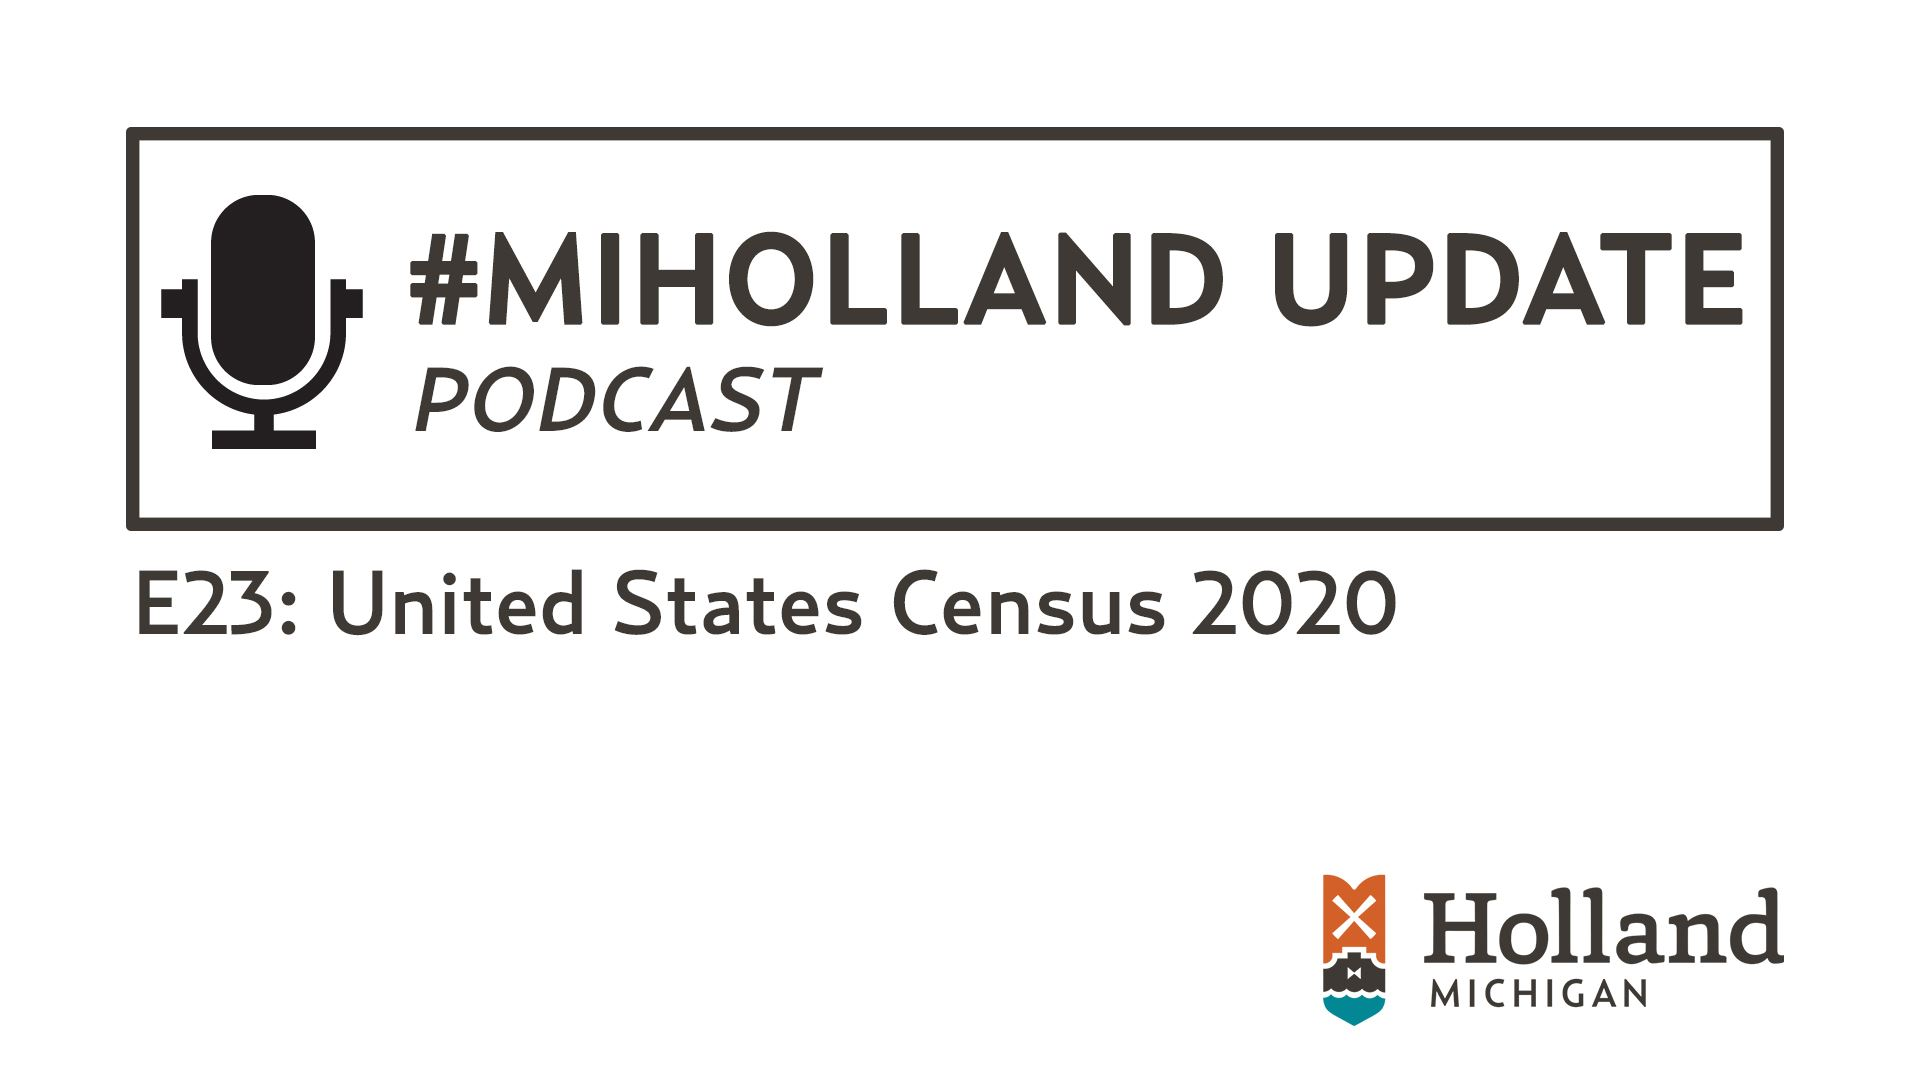 2020 Census Podcast